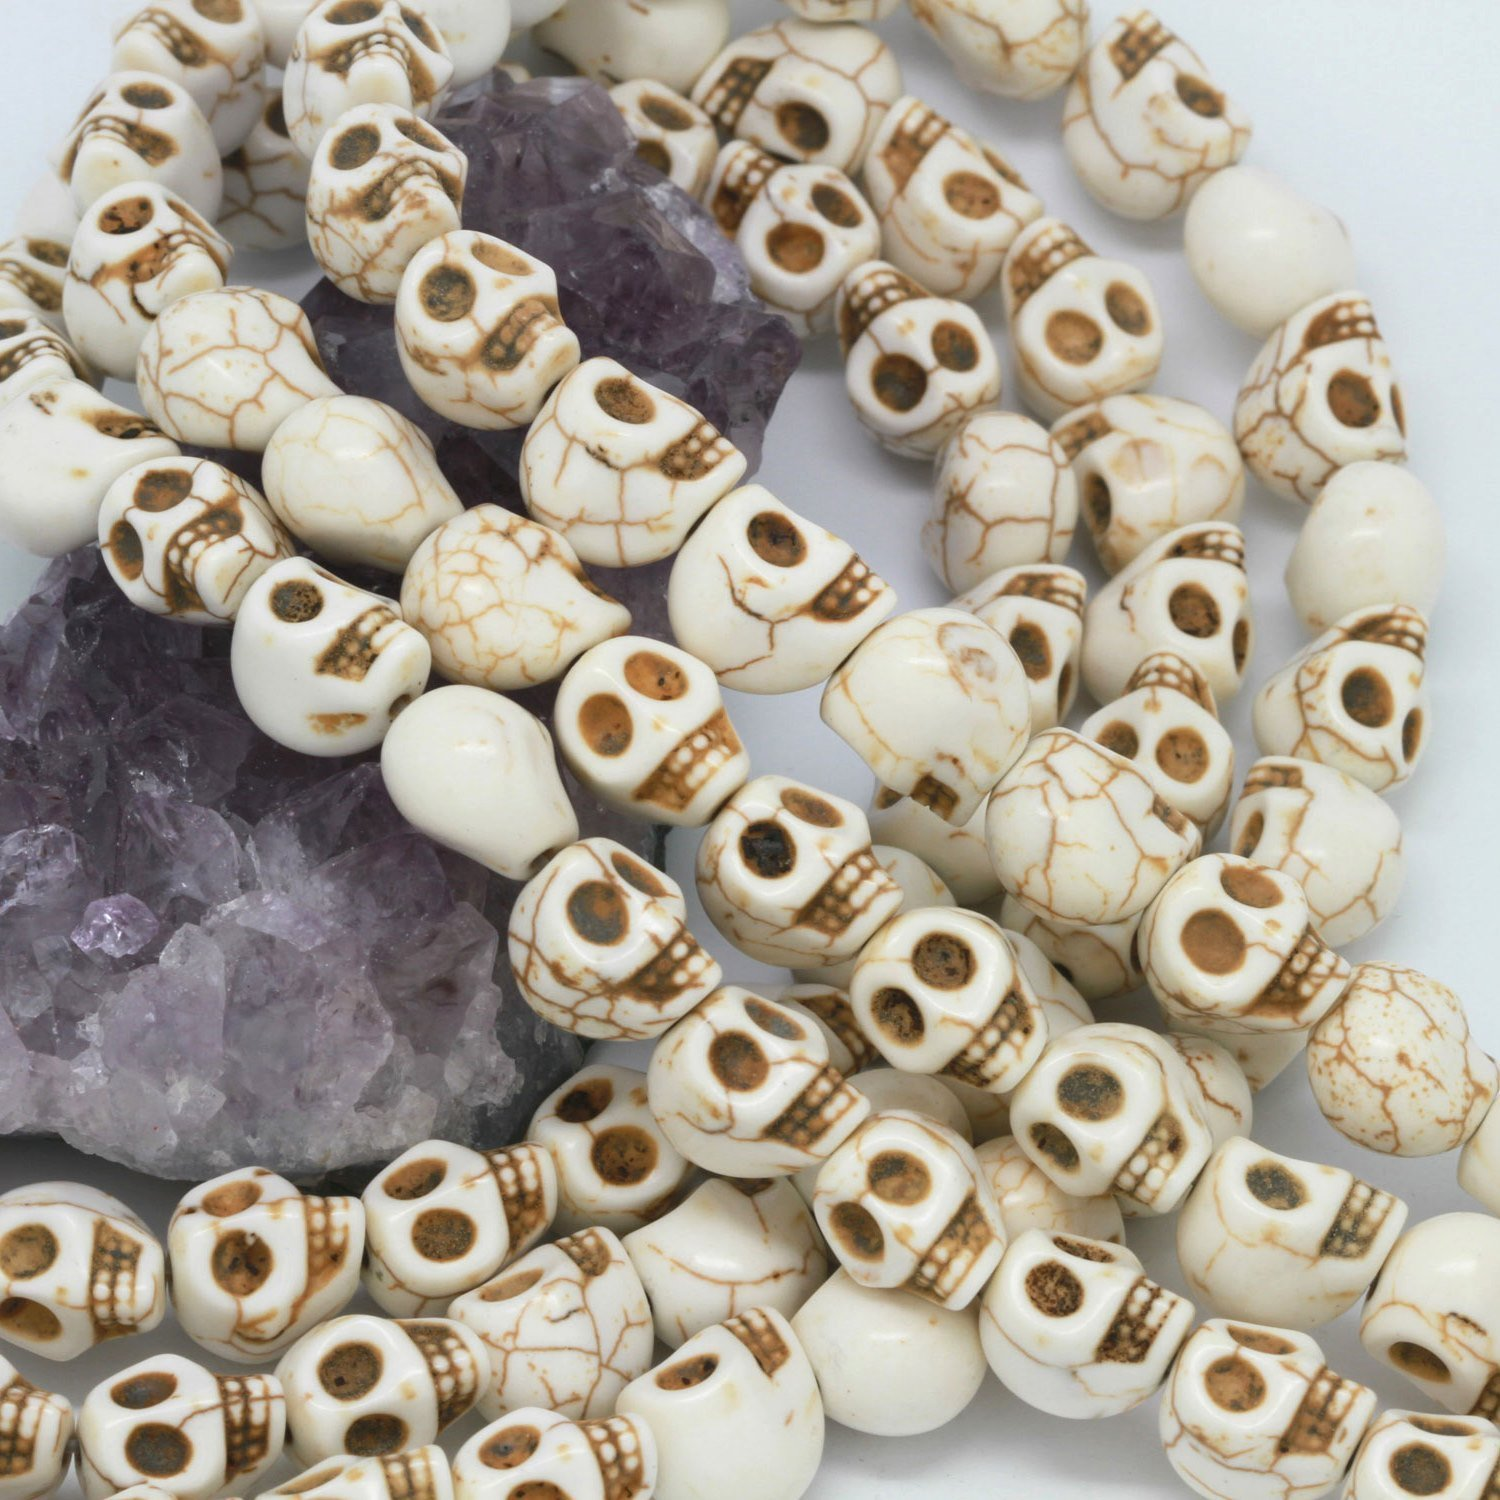 DUMAN 16 Inch Strand Loose Beads Carved Skull Spacer 10X12mm White AEQW-WER-AW123958